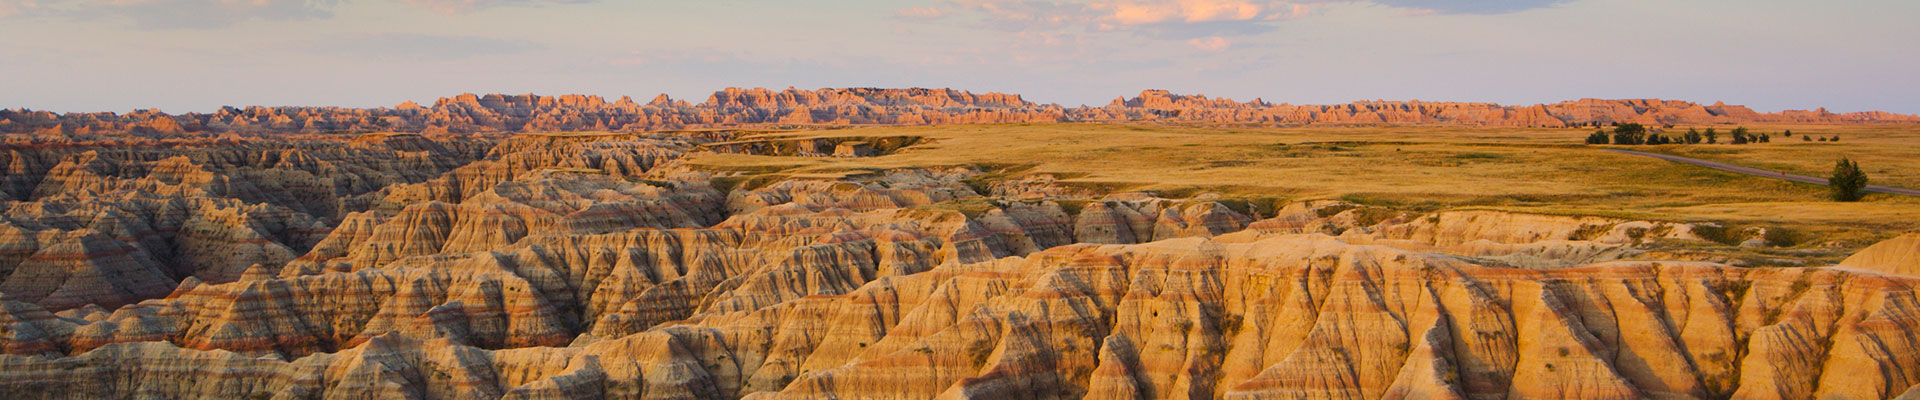 Fantasy RV Tours: 7 Day Black Hills and Badlands Rally (07UBHP-061721)